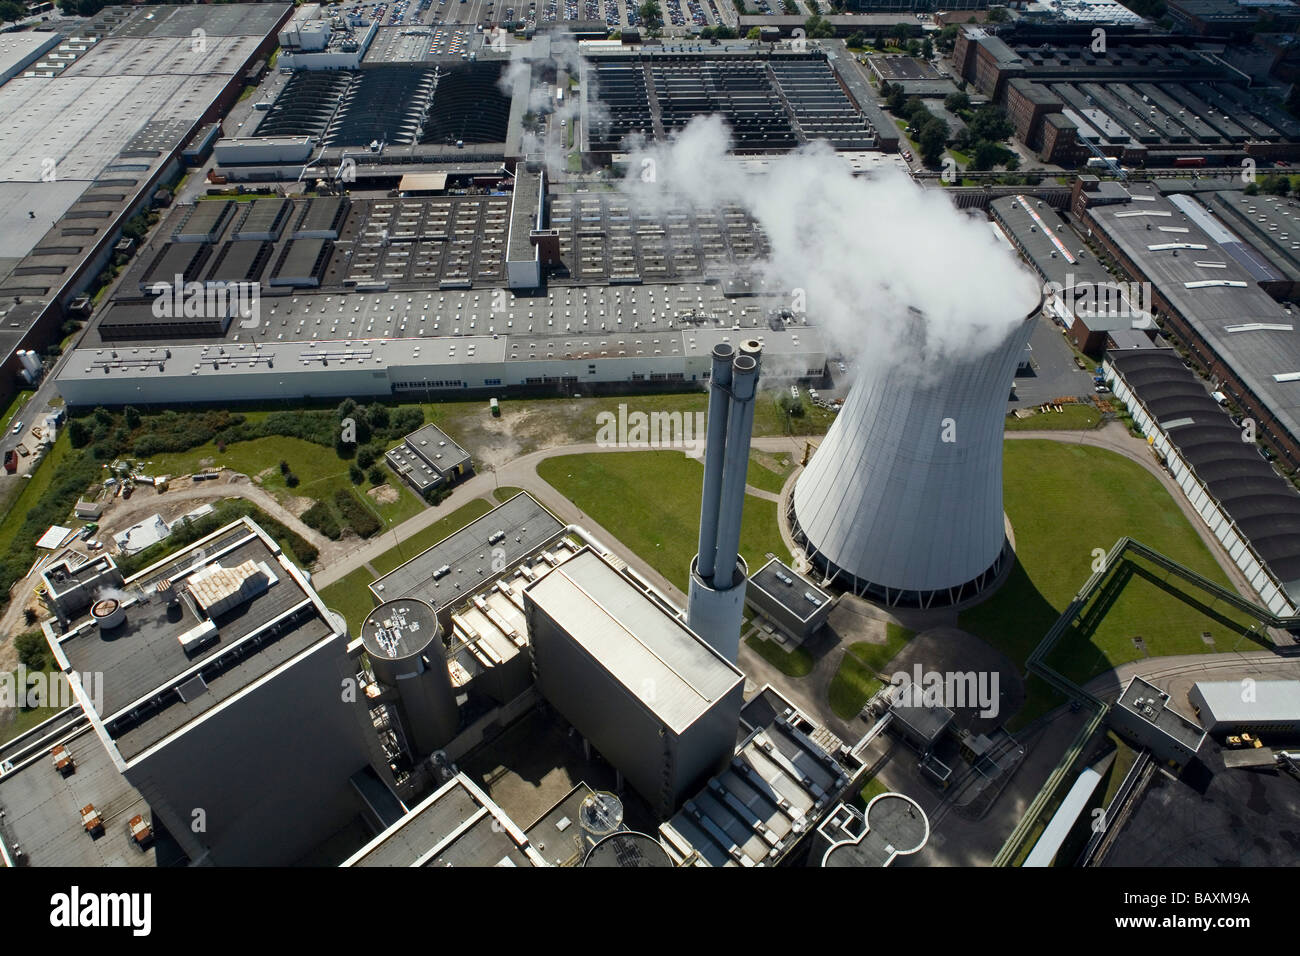 aerial view of Stocken and Volkswagen plant, power plant, Midland Canal, near Hanover, Lower Saxony - Stock Image